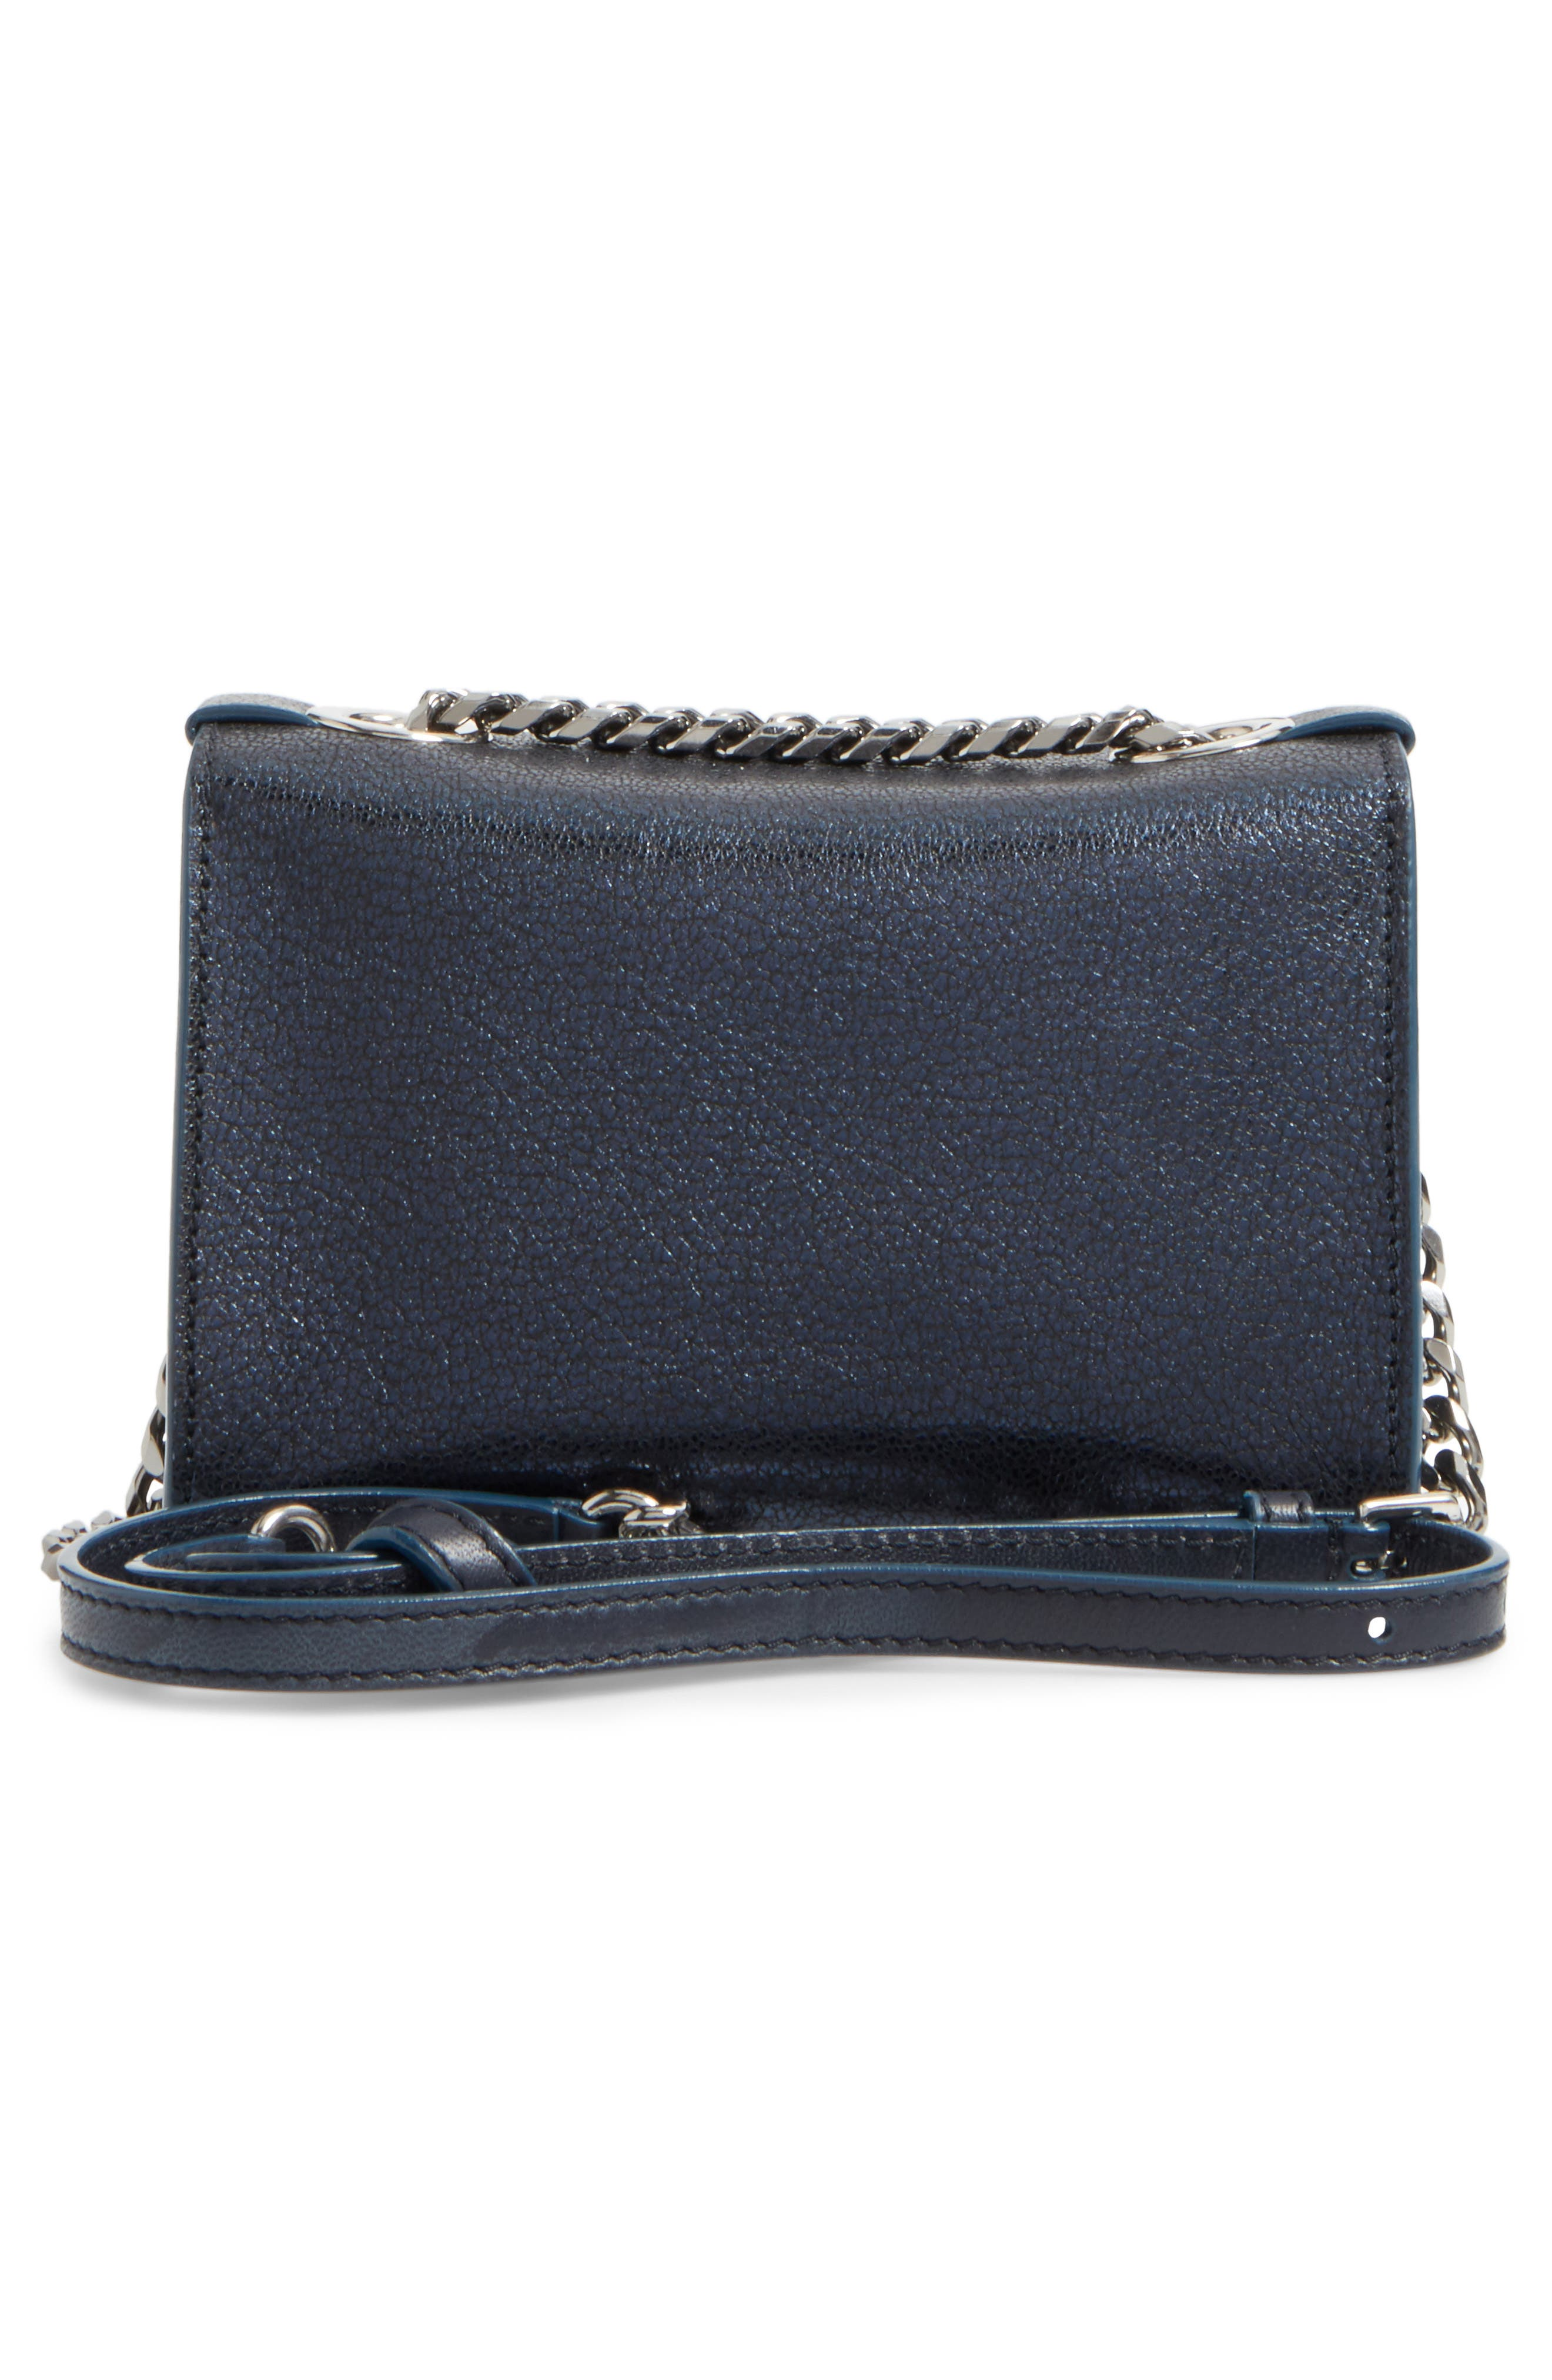 Mini Rebel Metallic Leather Crossbody Bag,                             Alternate thumbnail 3, color,                             400